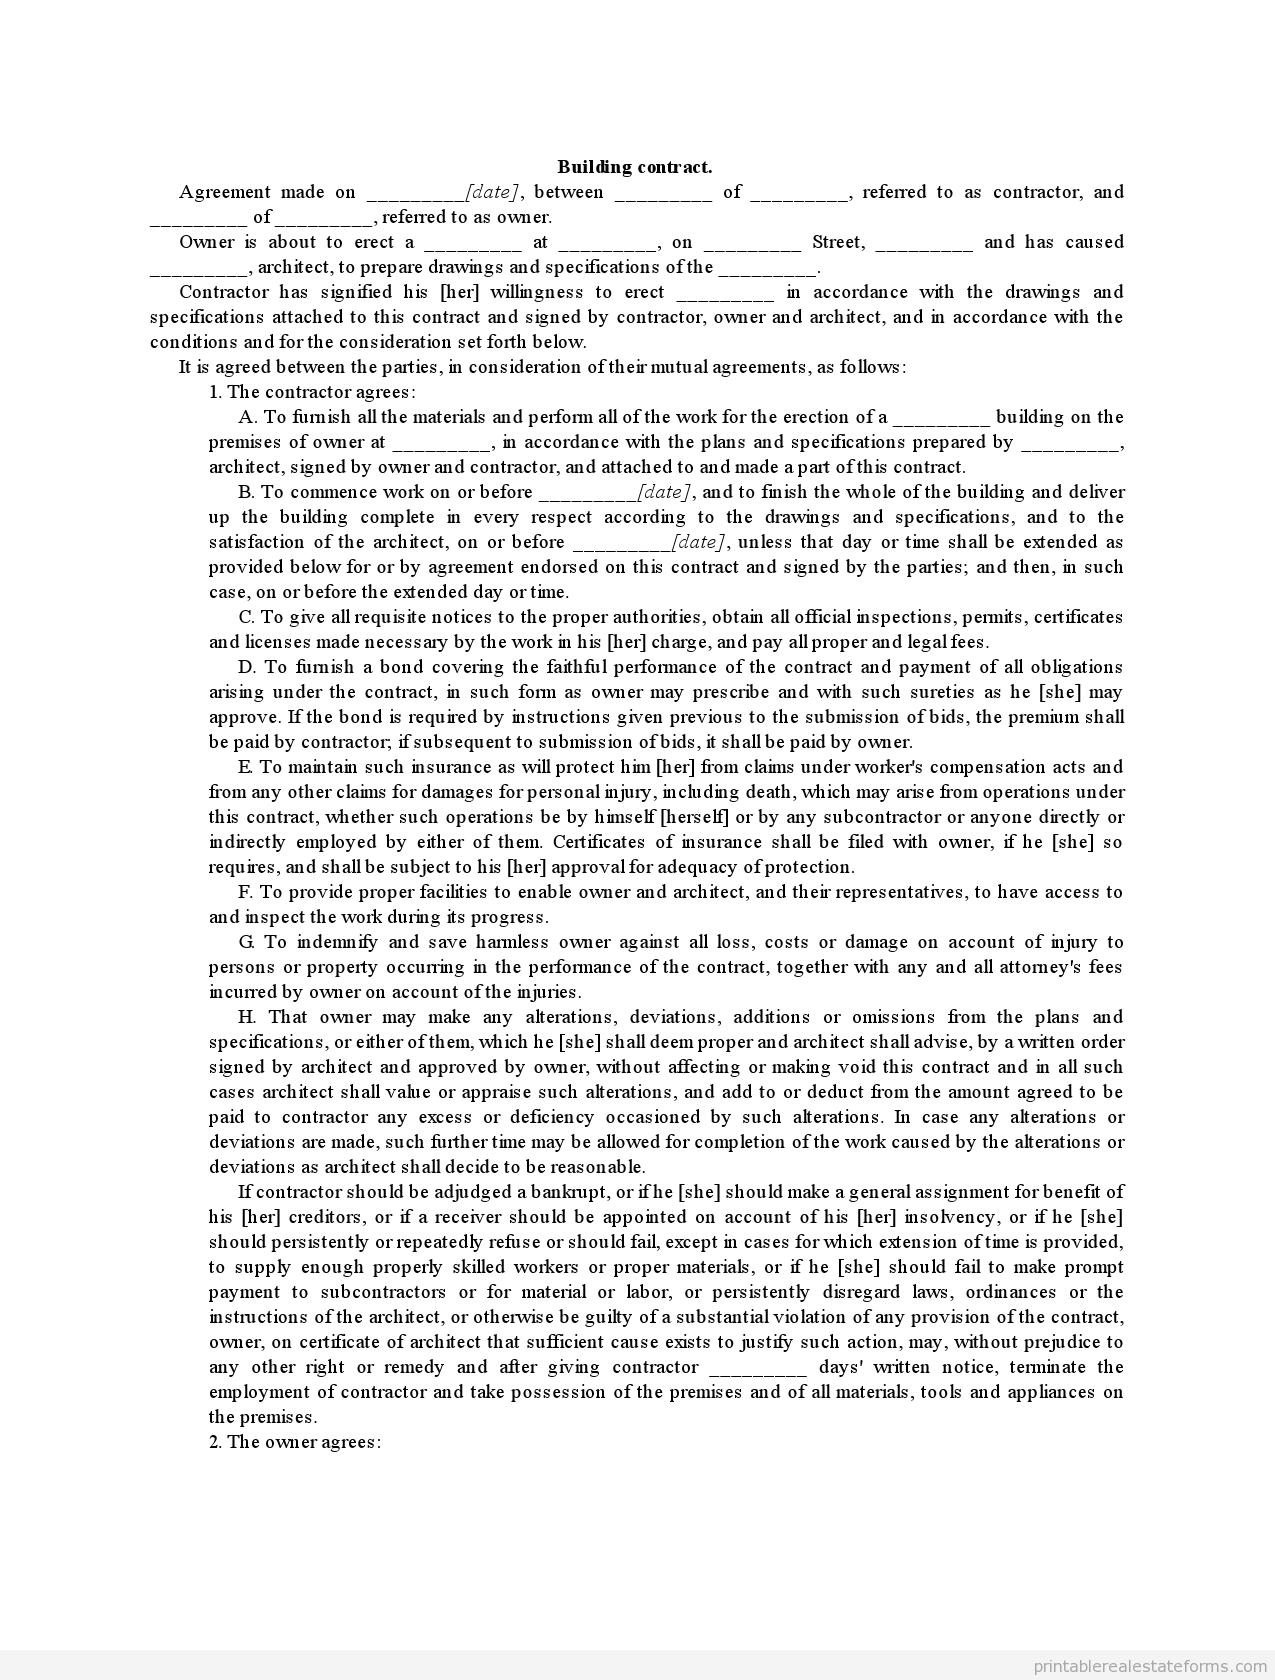 Printable Building Contract Template 2015